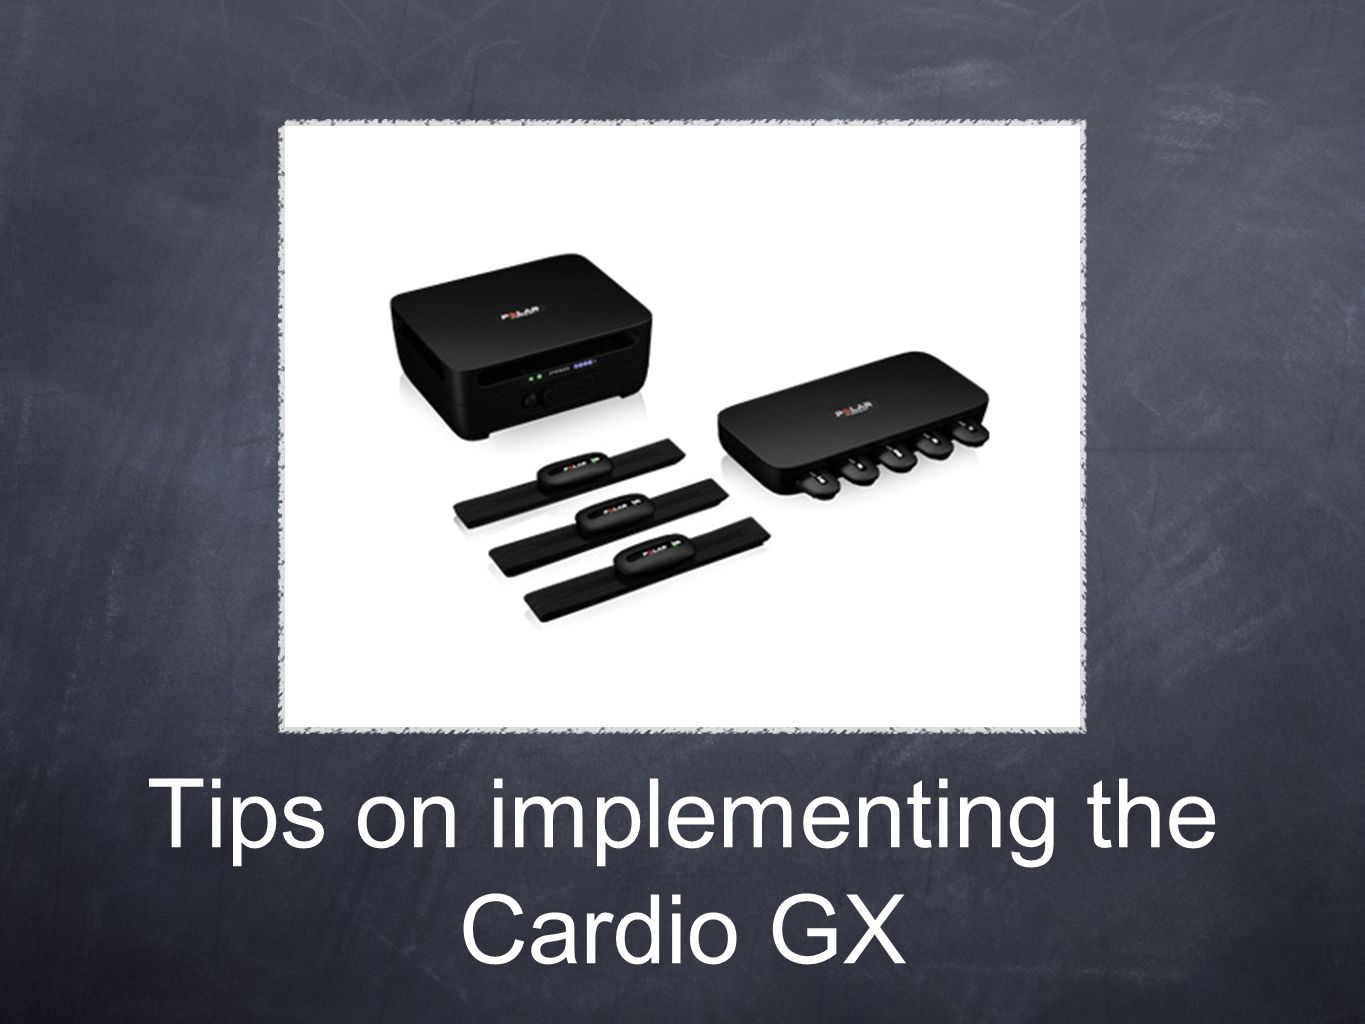 Tips on implementing the Cardio GX